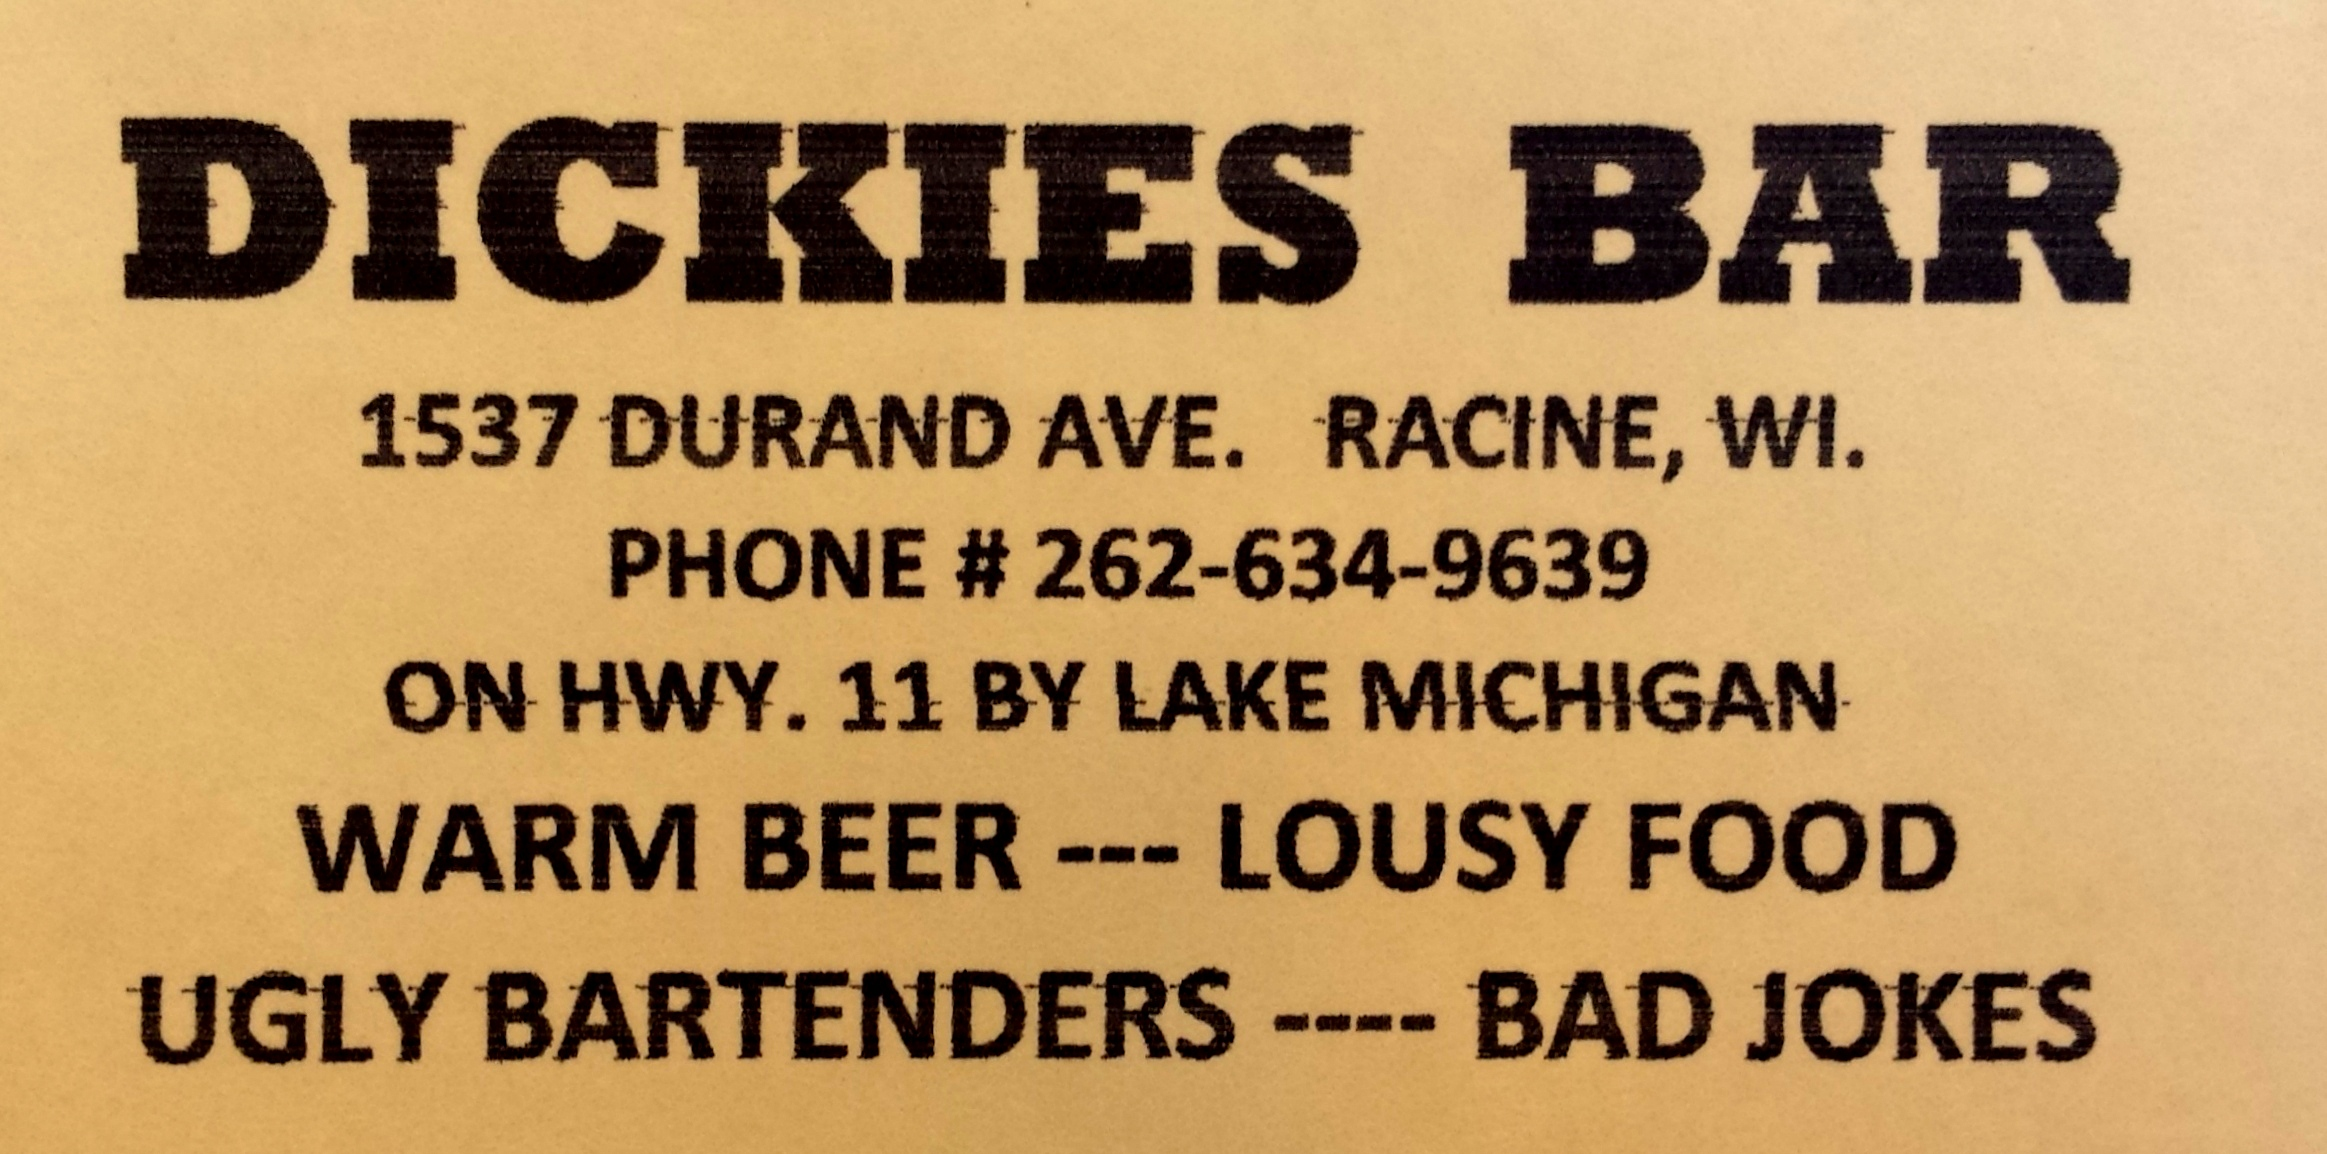 u.11271.Dickies Bar logo.jpg